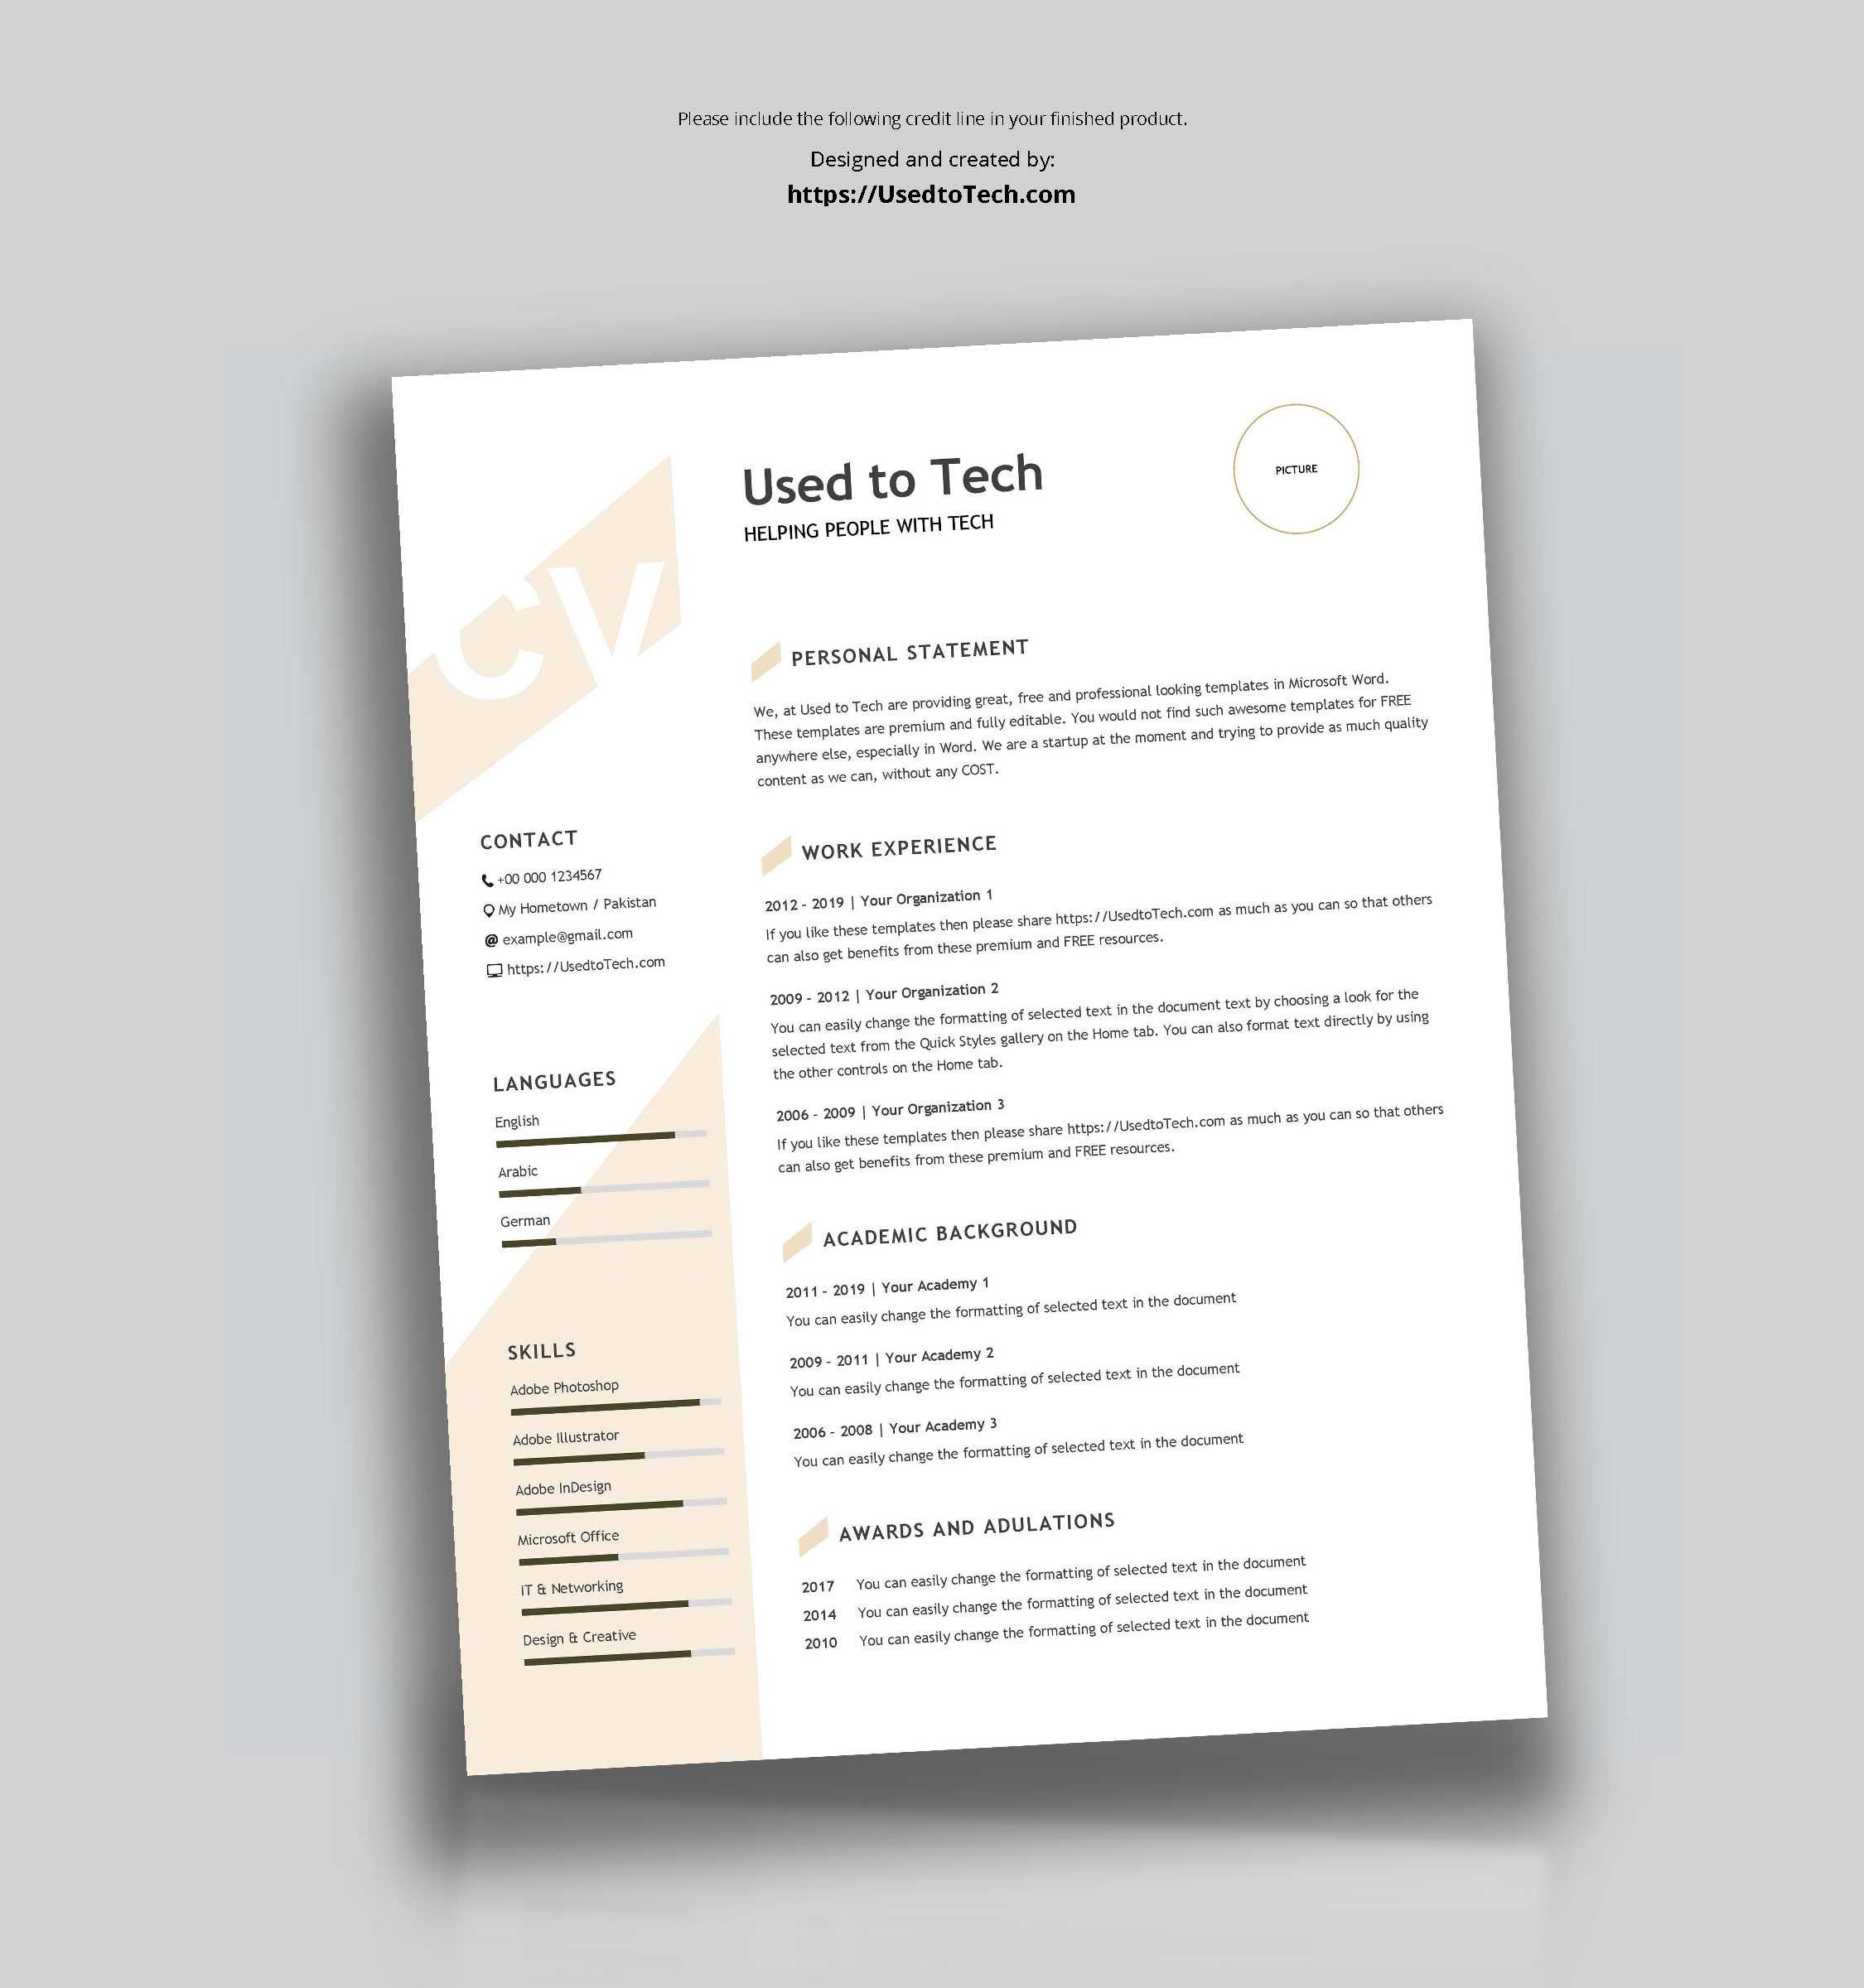 Modern Resume Template In Word Free - Used To Tech Intended For How To Find A Resume Template On Word